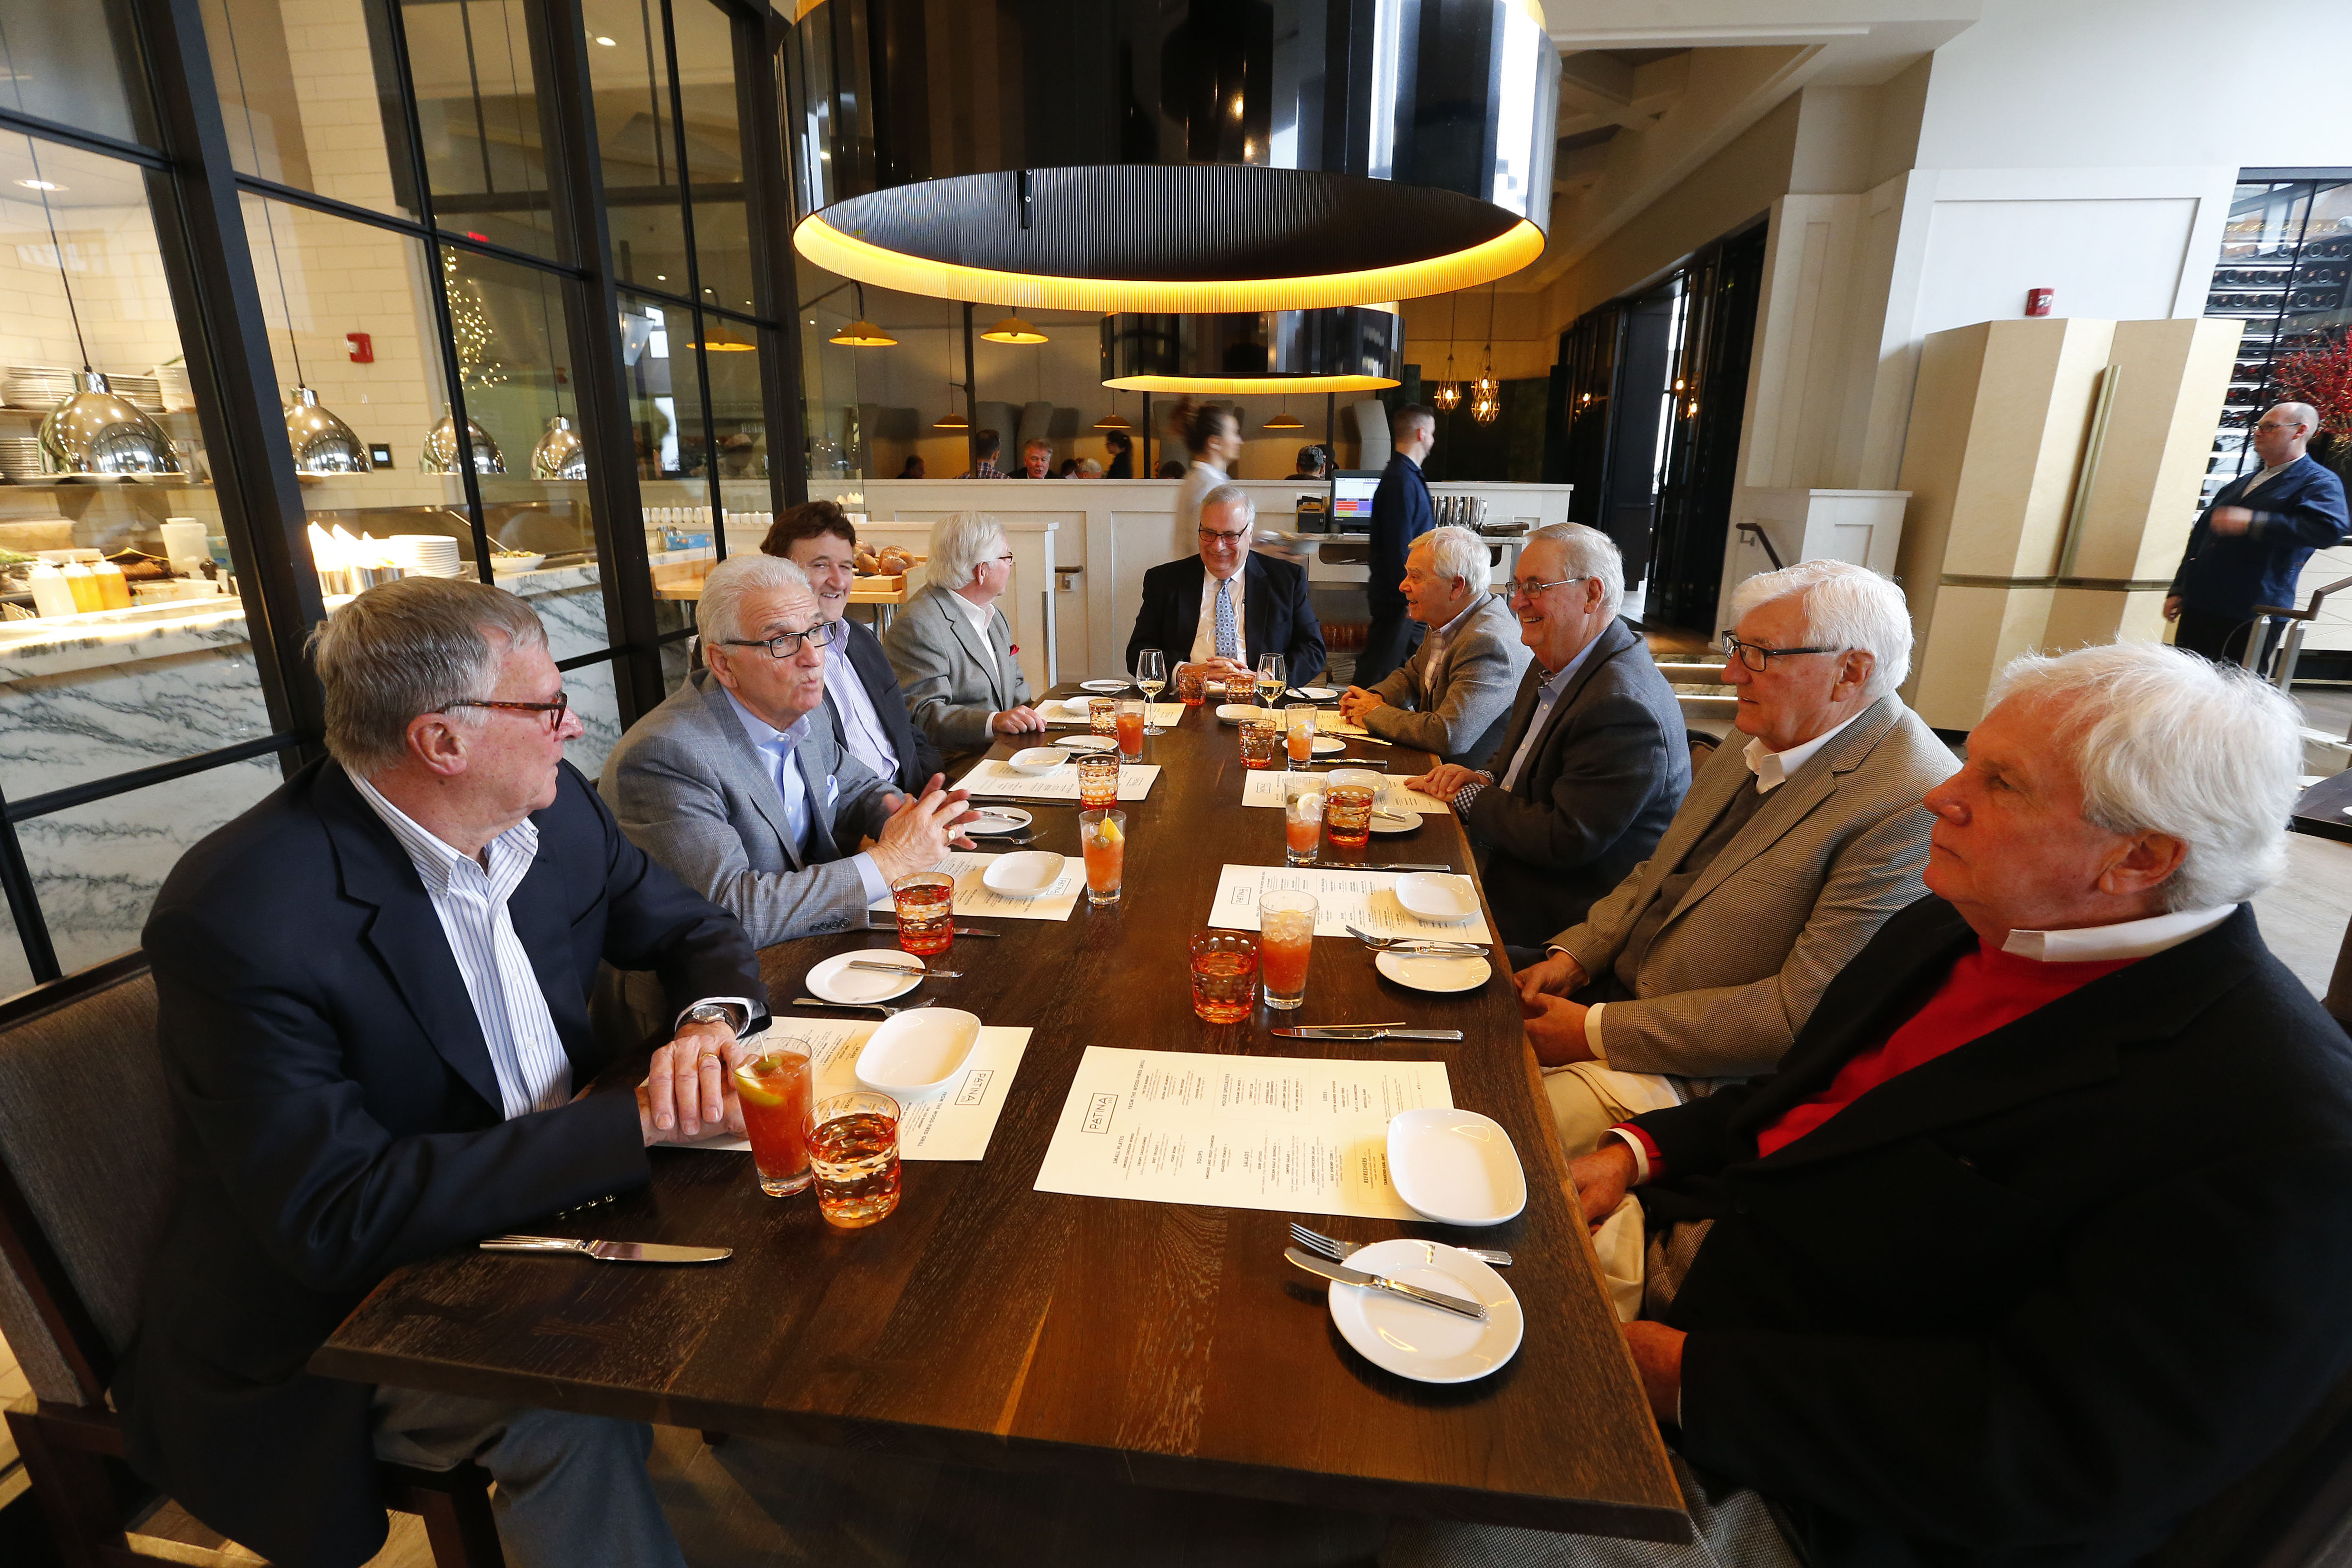 The Monday Lunch Crew, from left to right: Walt Jaros, Sam Gullo, Roger Pasquarella, Karl Puzio, Hon. Joseph Fiorella, Fred Occhino, Frank Kopfer, Jim Harrity and Dennis Dargavel, enjoy some conversation at Patina in Buffalo Monday, Dec. 12, 2016. (Mark Mulville/Buffalo News)